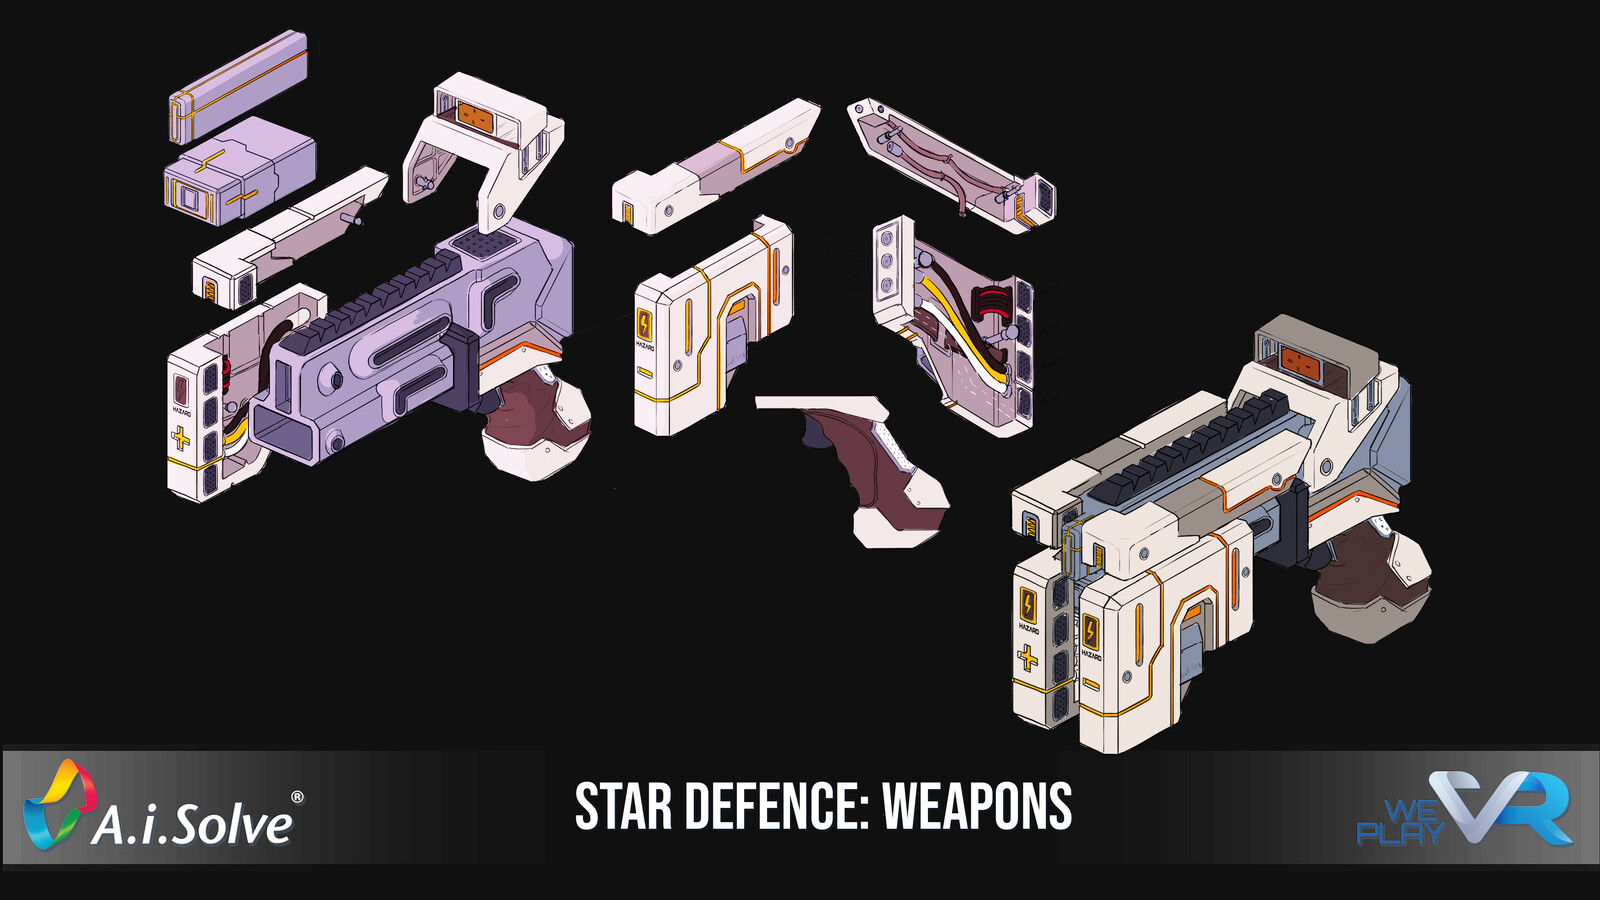 Star Defence: Weapons